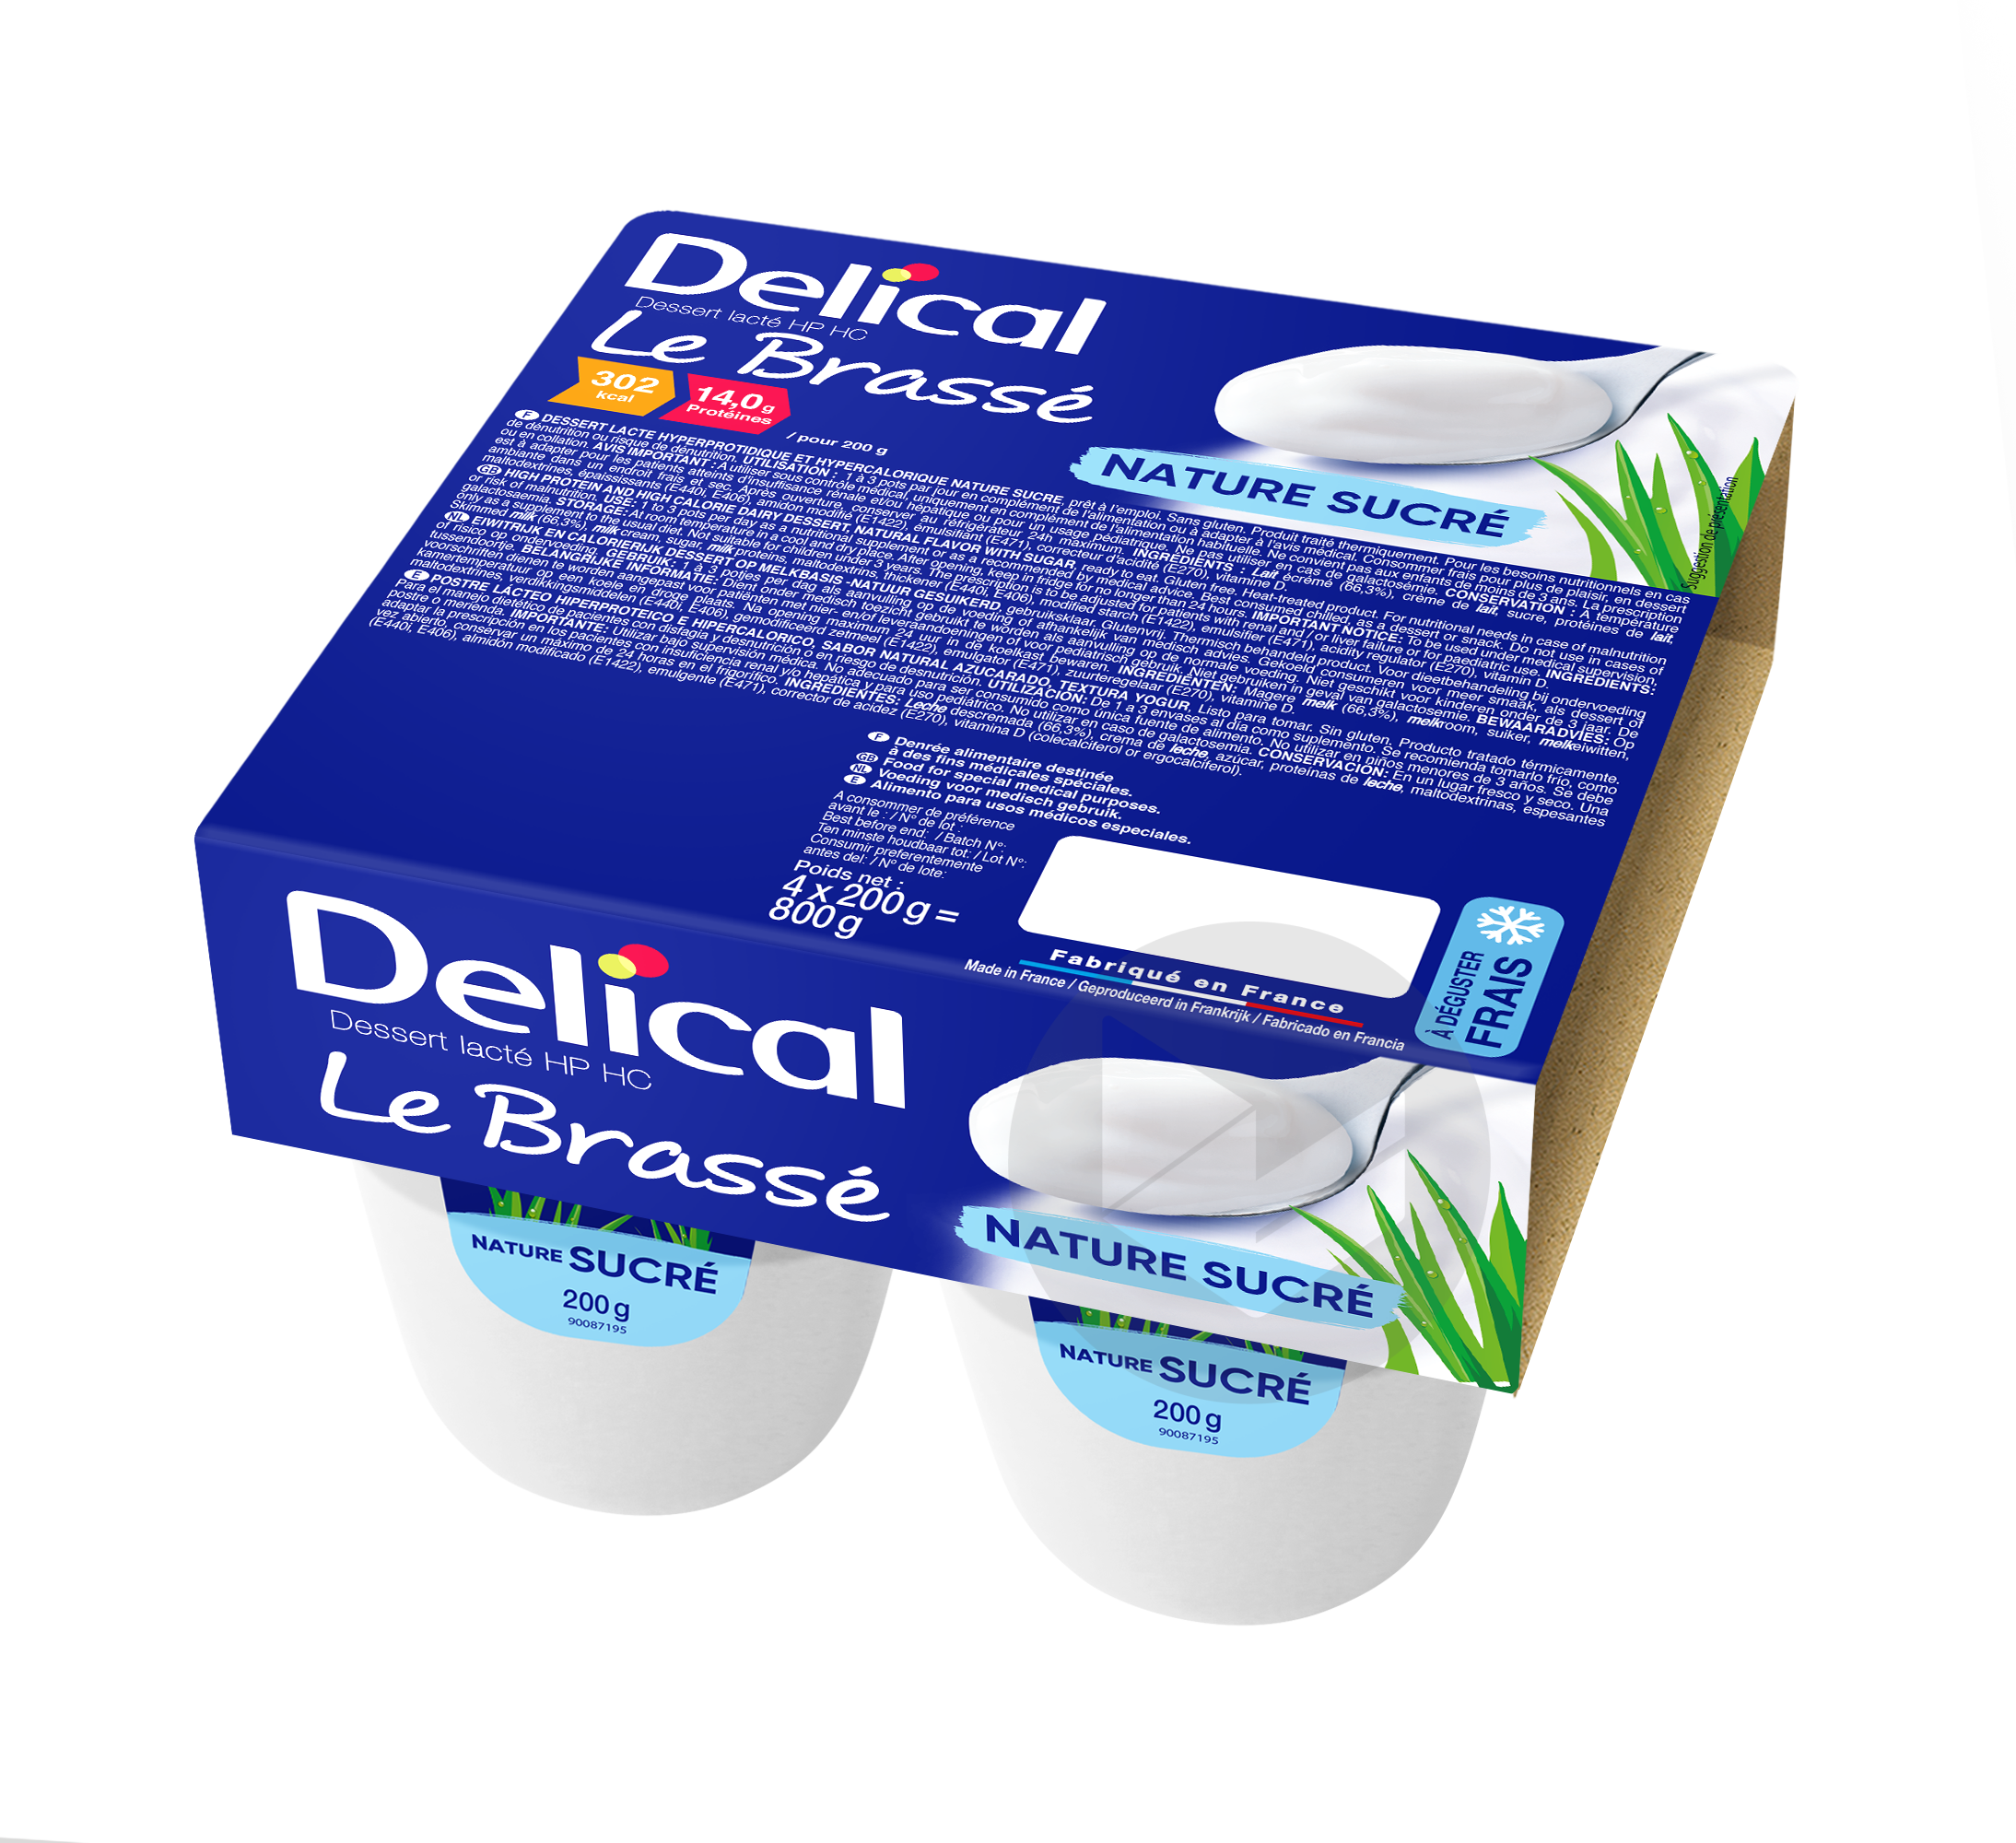 Delical Le Brasse Hp Hc Nature Sucre